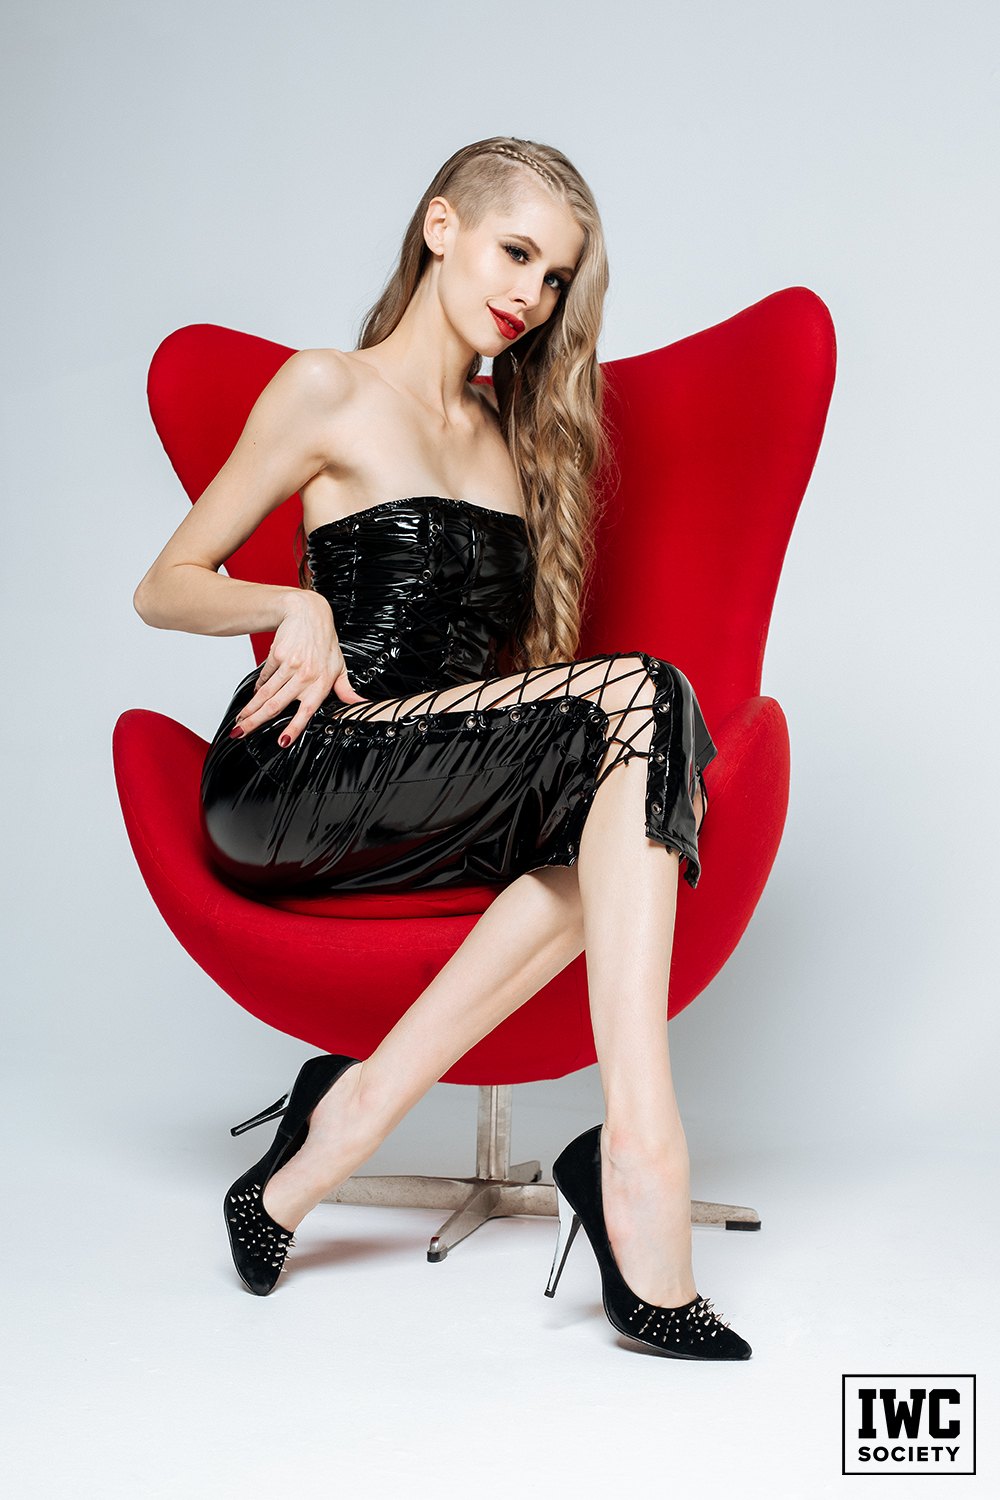 blonde dominatrix with long legs sitting in a red chair wearing a black vinyl dress